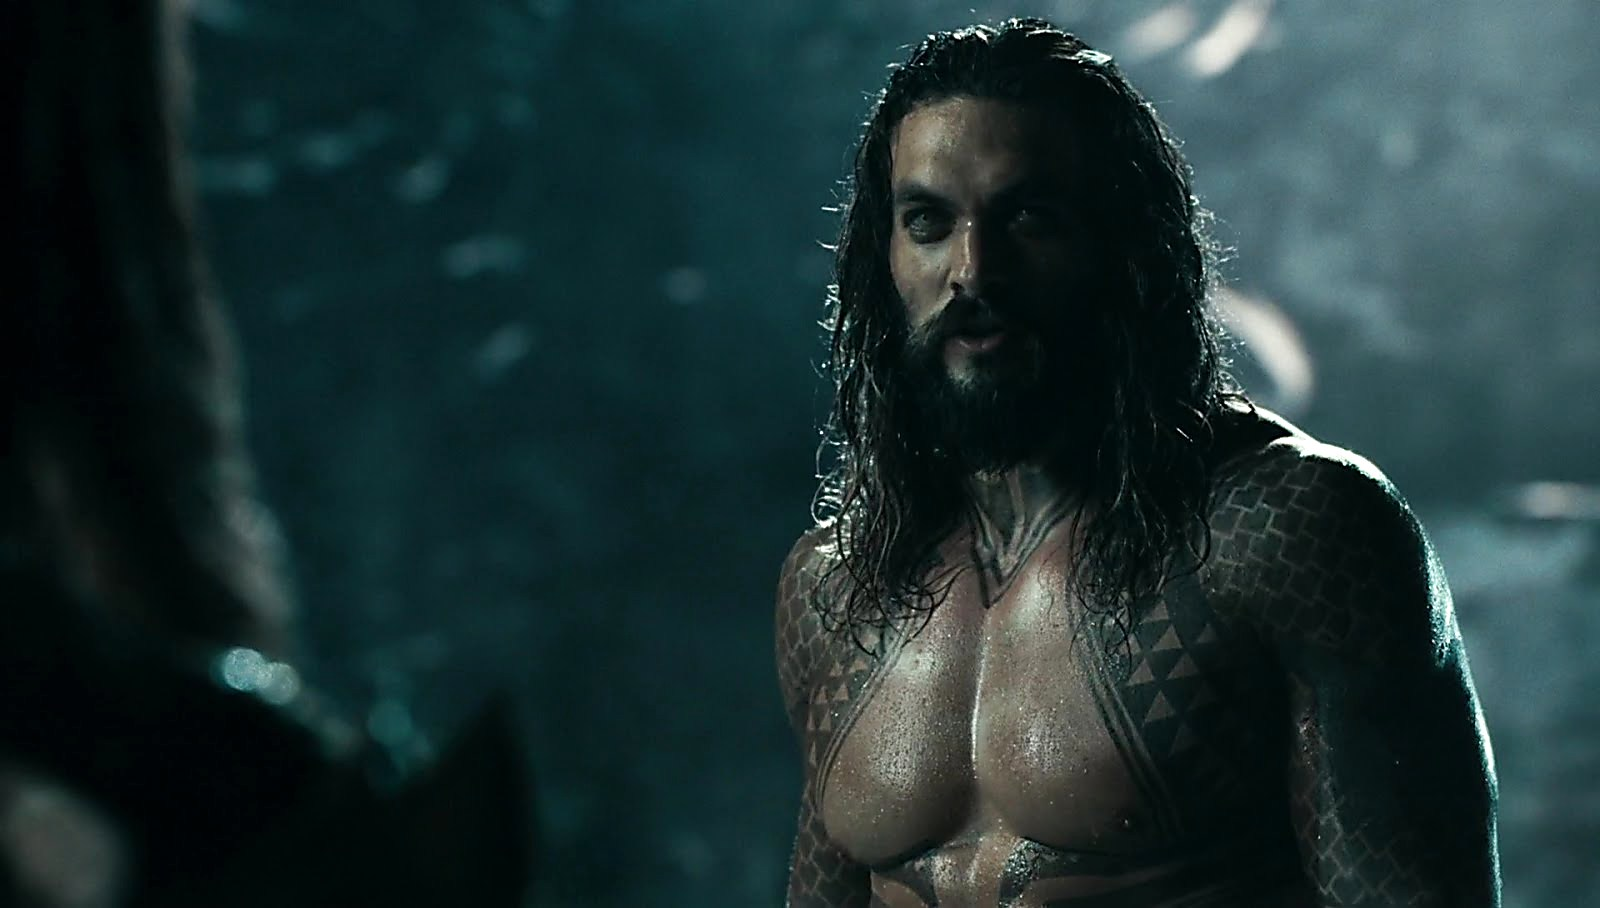 Jason Momoa  Justice League 2018 02 13 1